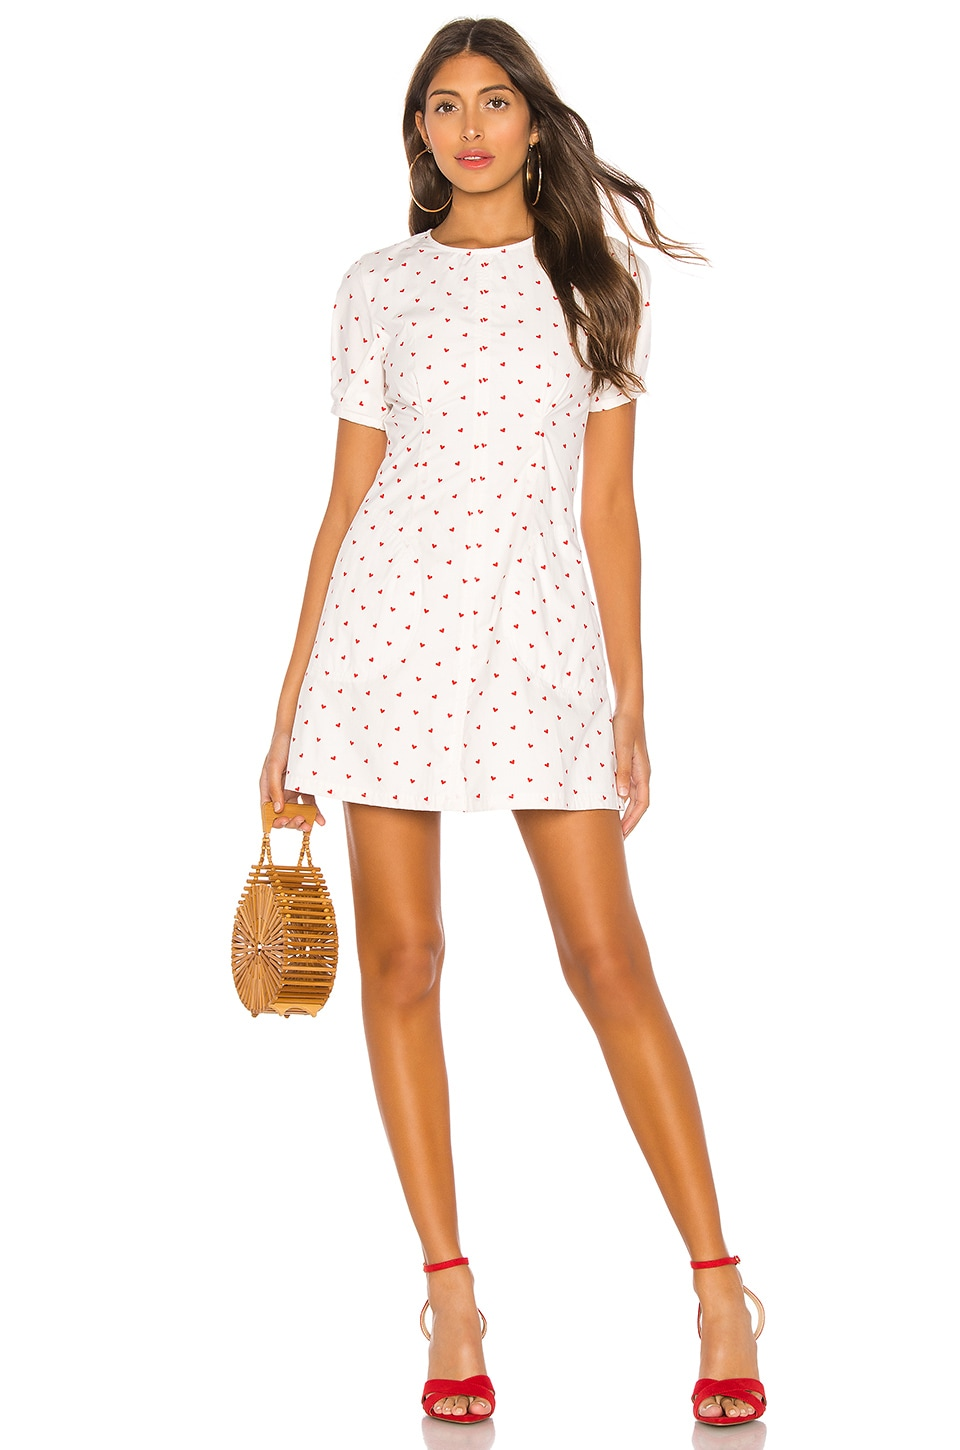 The Aryn Mini Dress